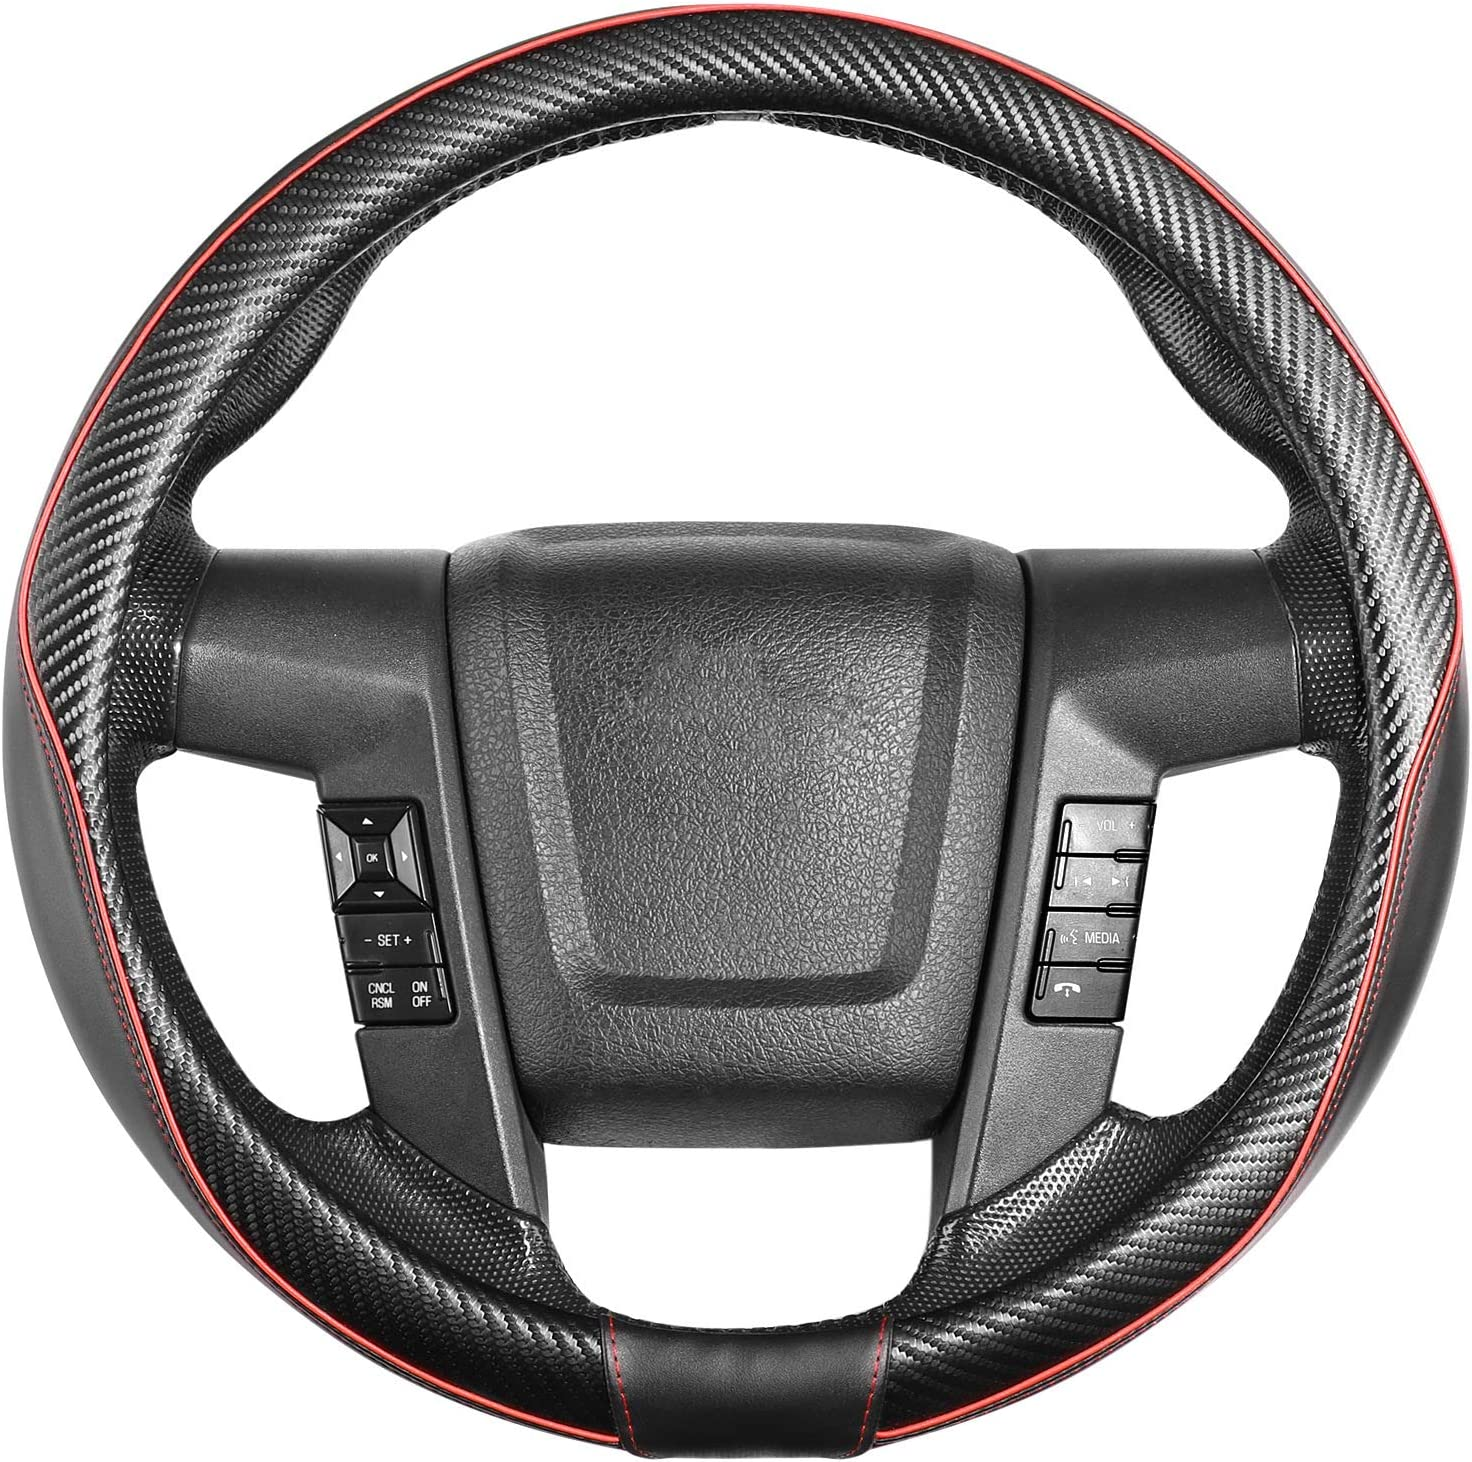 SEG Direct Car Steering Wheel Cover Universal Standard-Size 14 1//2 inches 15 inches Black Microfiber Leather